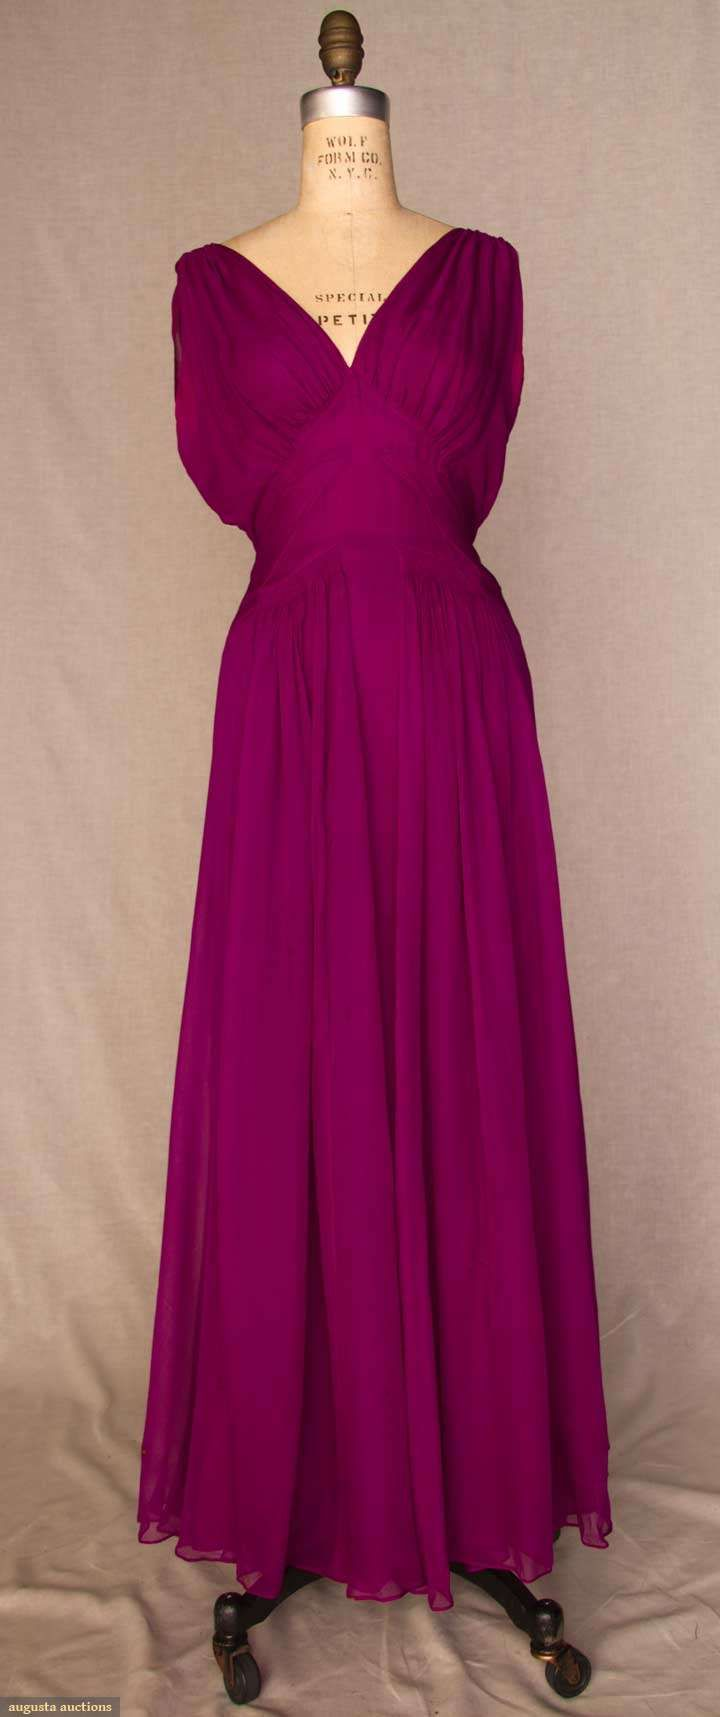 Augusta Auctions, November 10, 2010 - St. Pauls - NYC, Lot 366: Jean Patou Silk Evening Gown, 1938-1940